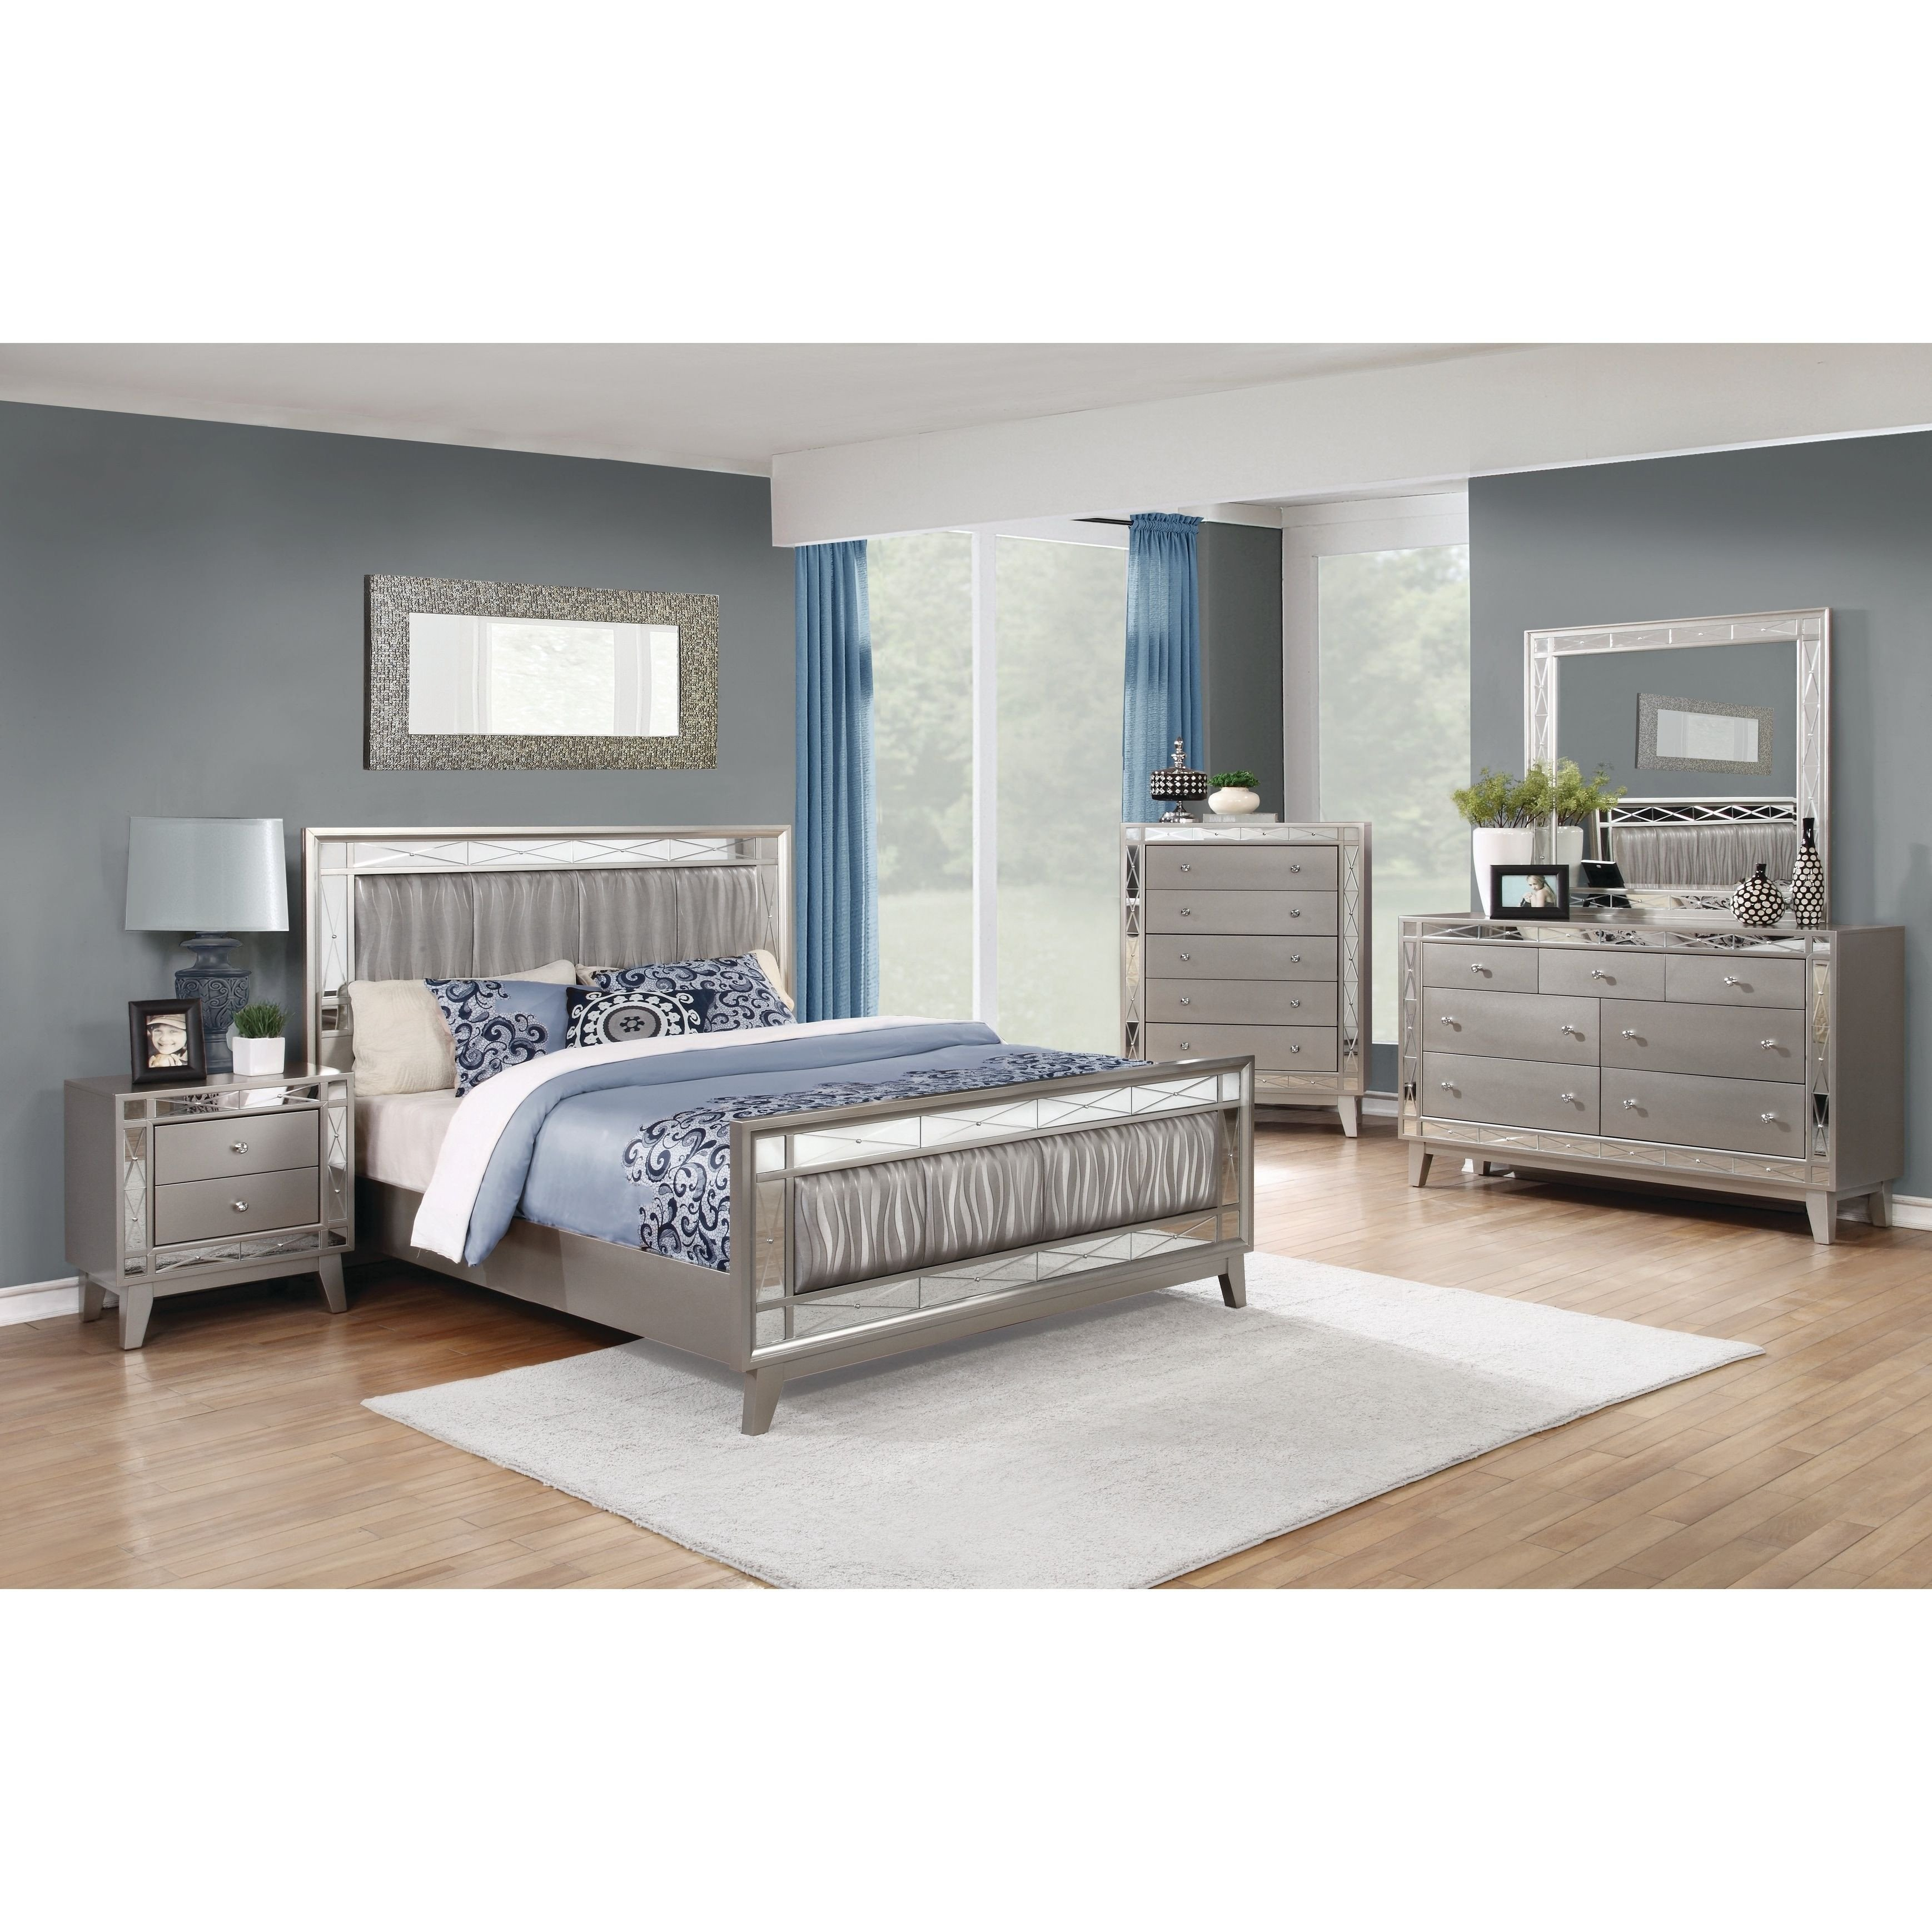 Silver Grey Bedroom Furniture Awesome Silver orchid Barriscale Contemporary Metallic 5 Piece